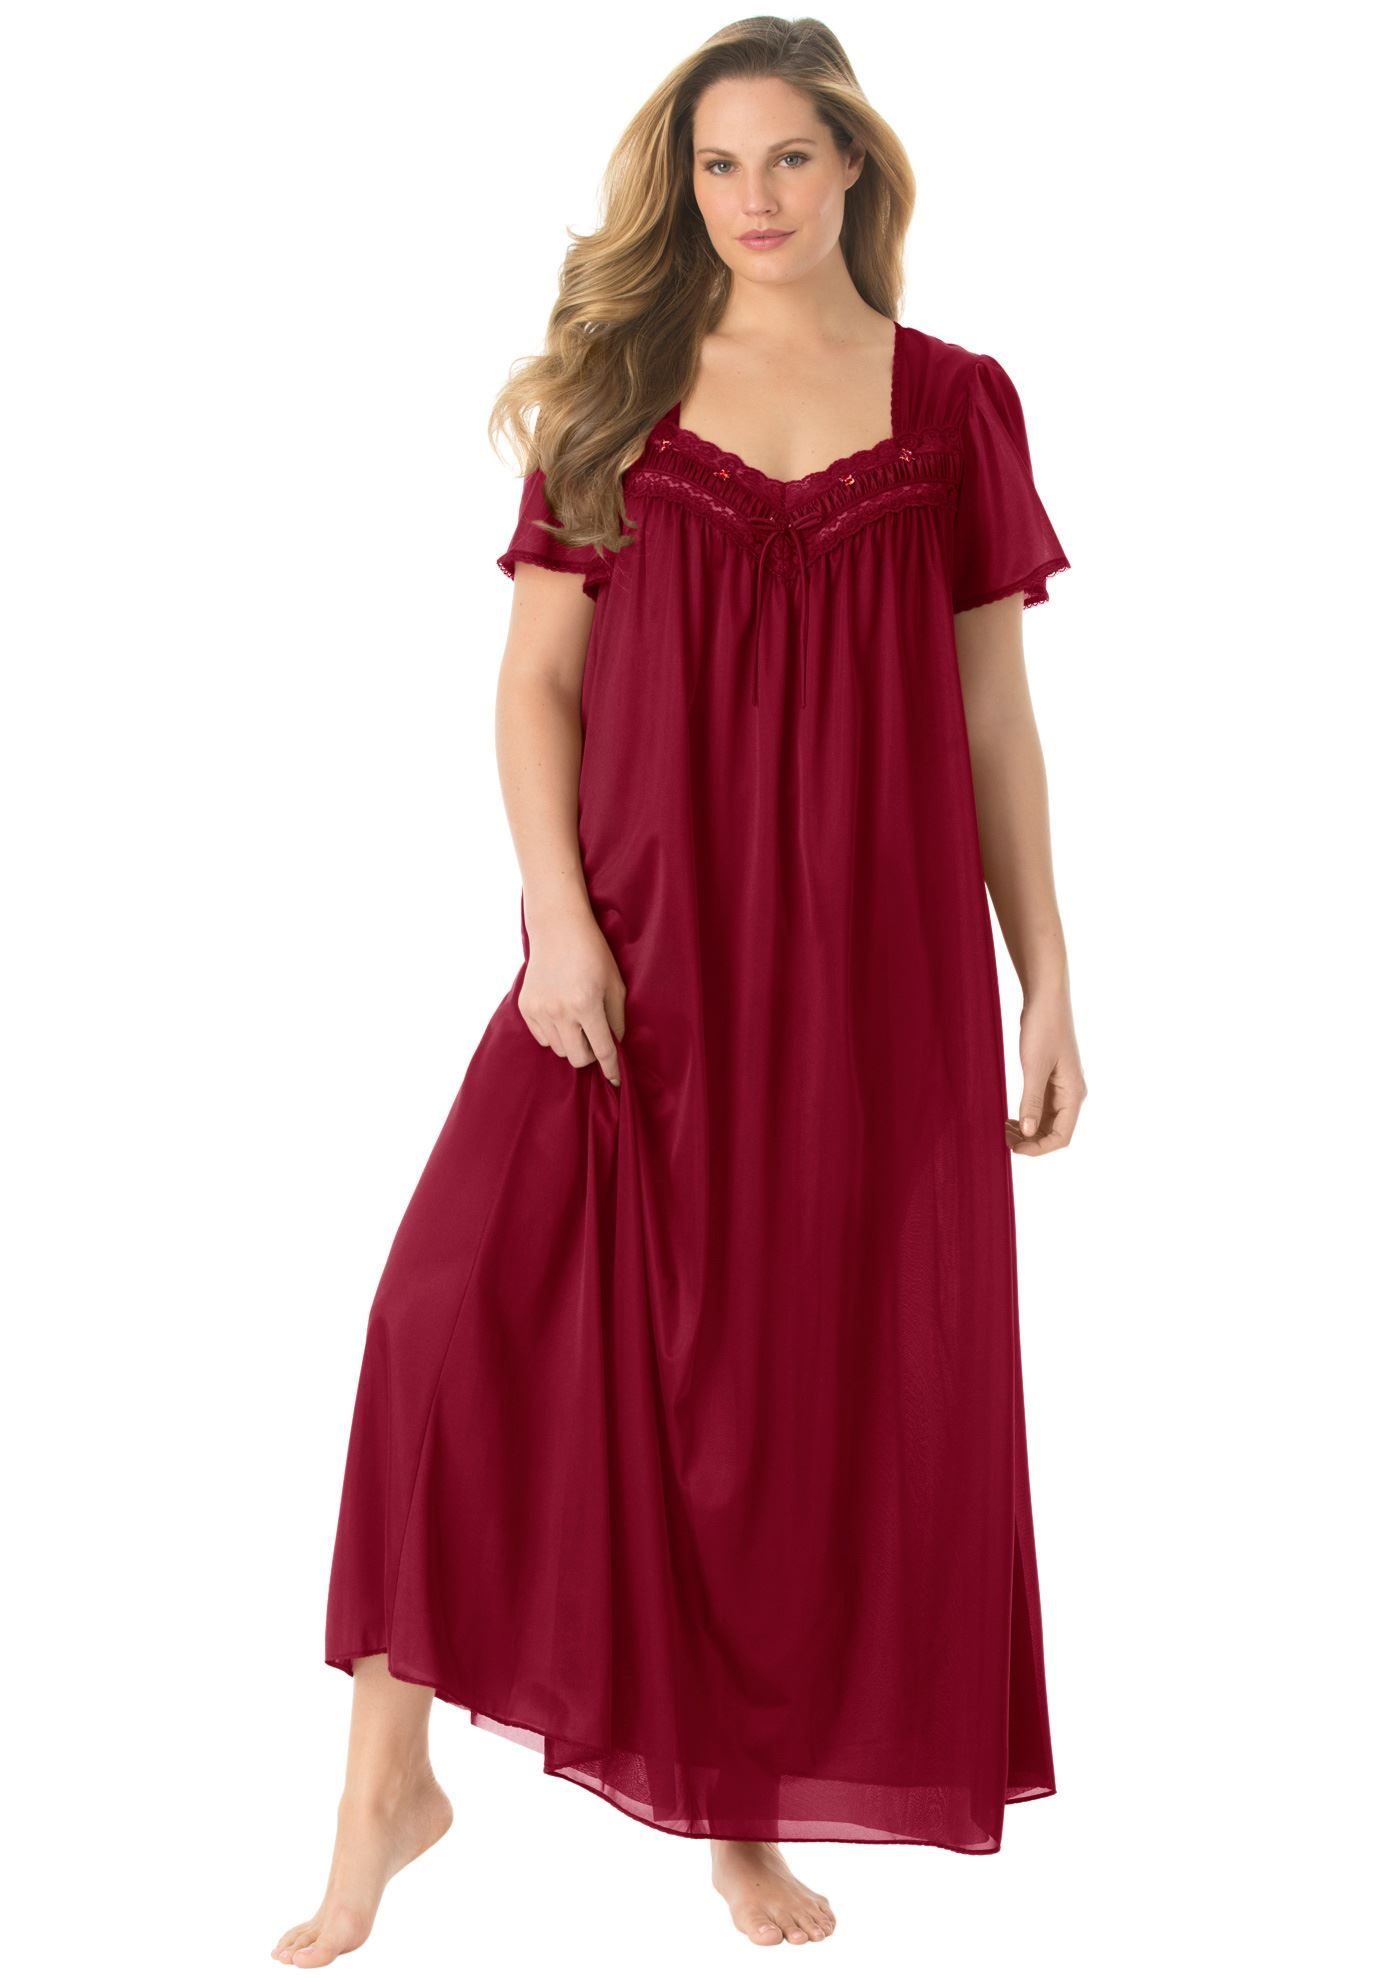 a4ea9b8cc90f Full-sweep nightgown by Only Necessities®